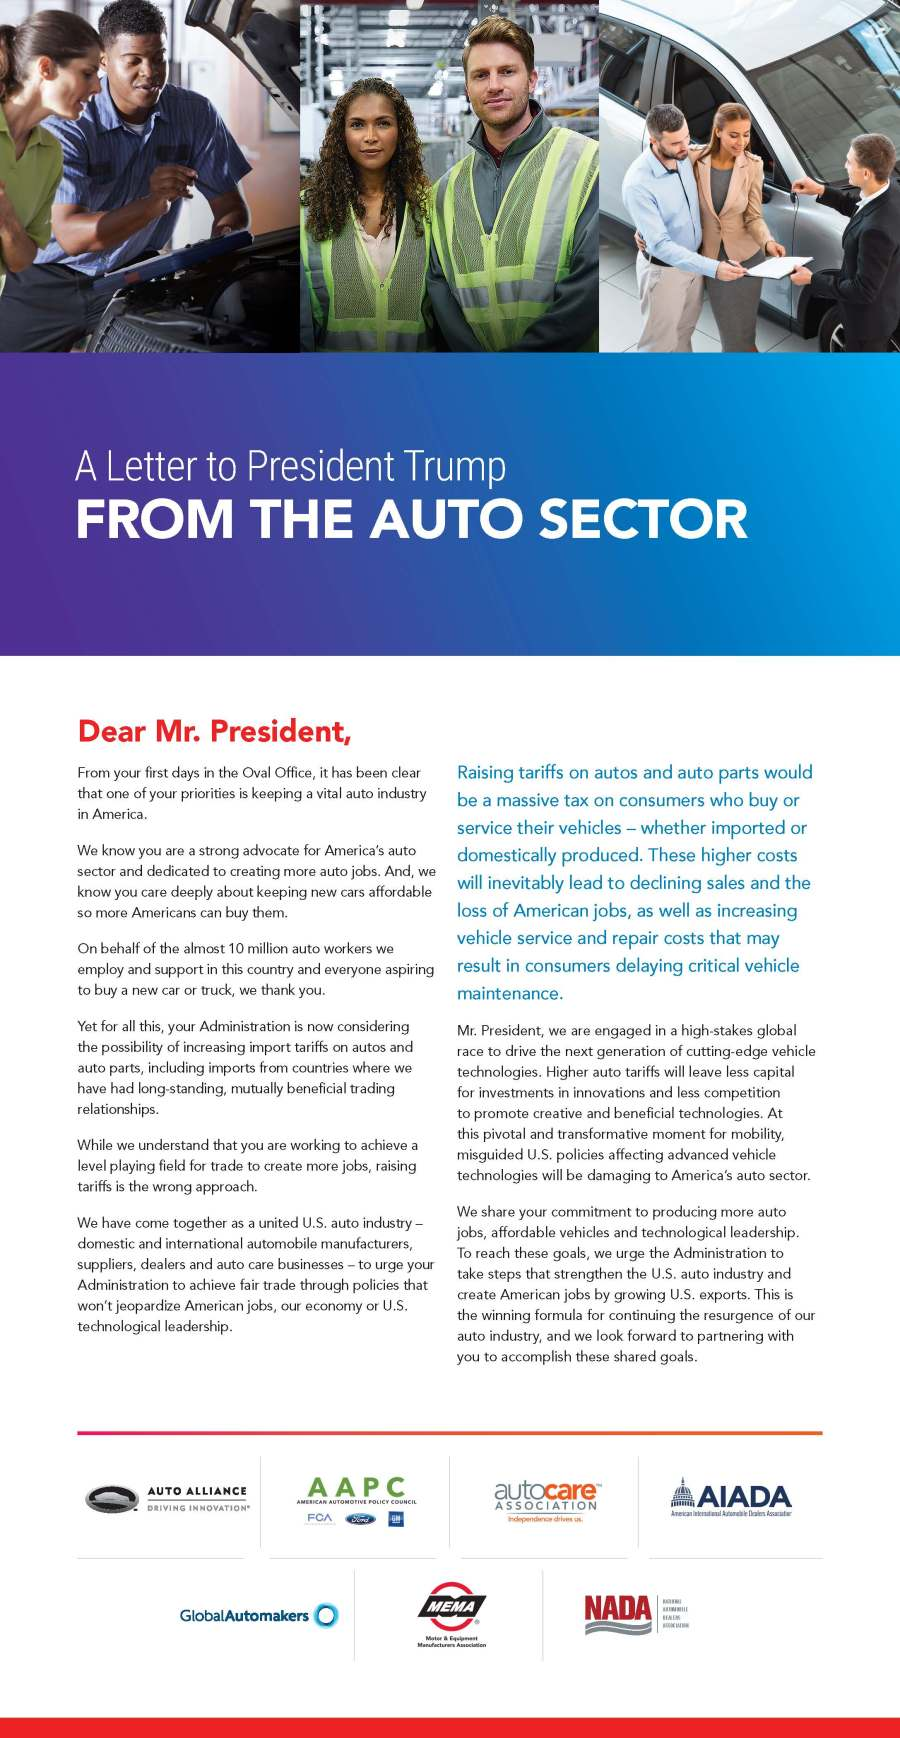 AA_3758 Auto Alliance WSJ Trade Ad One FULL PAGE V 7